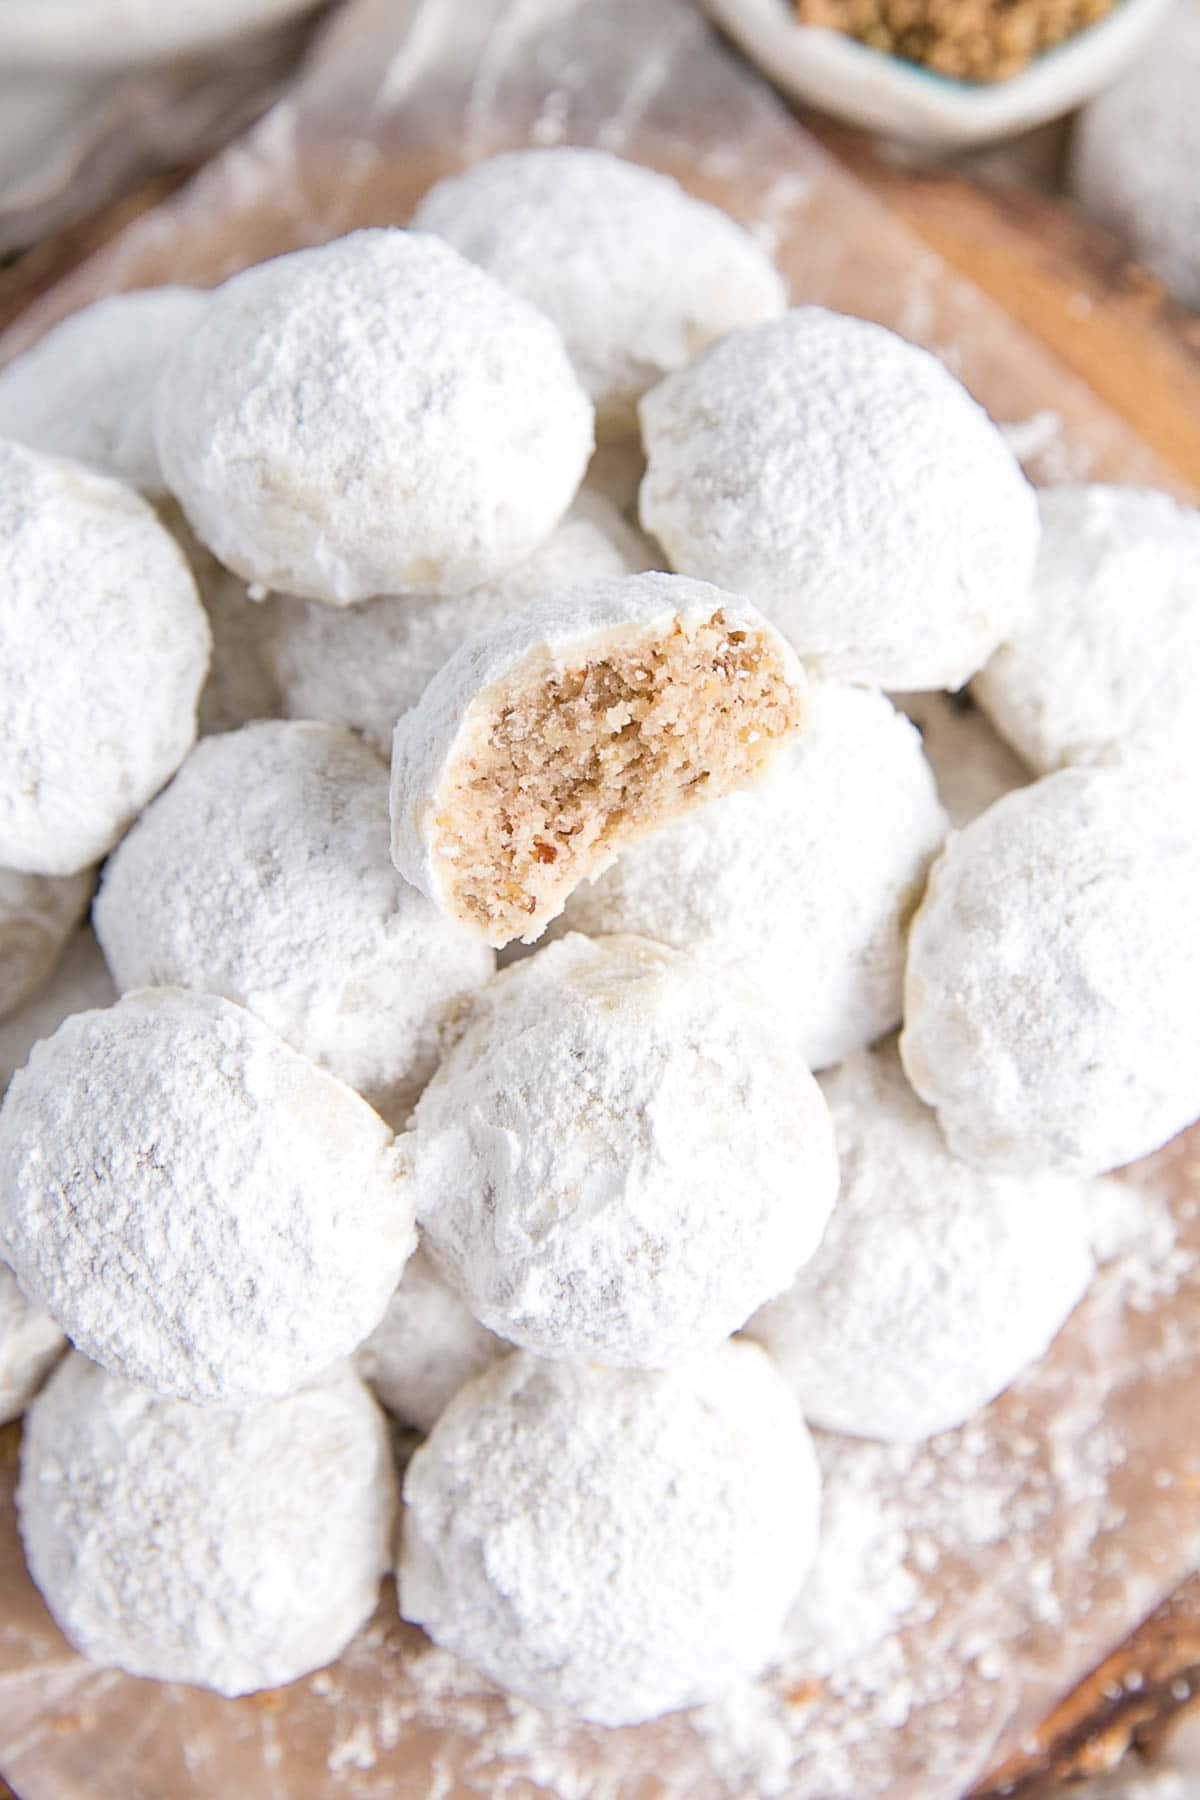 Pecan butter cookies dusted with powdered sugar.